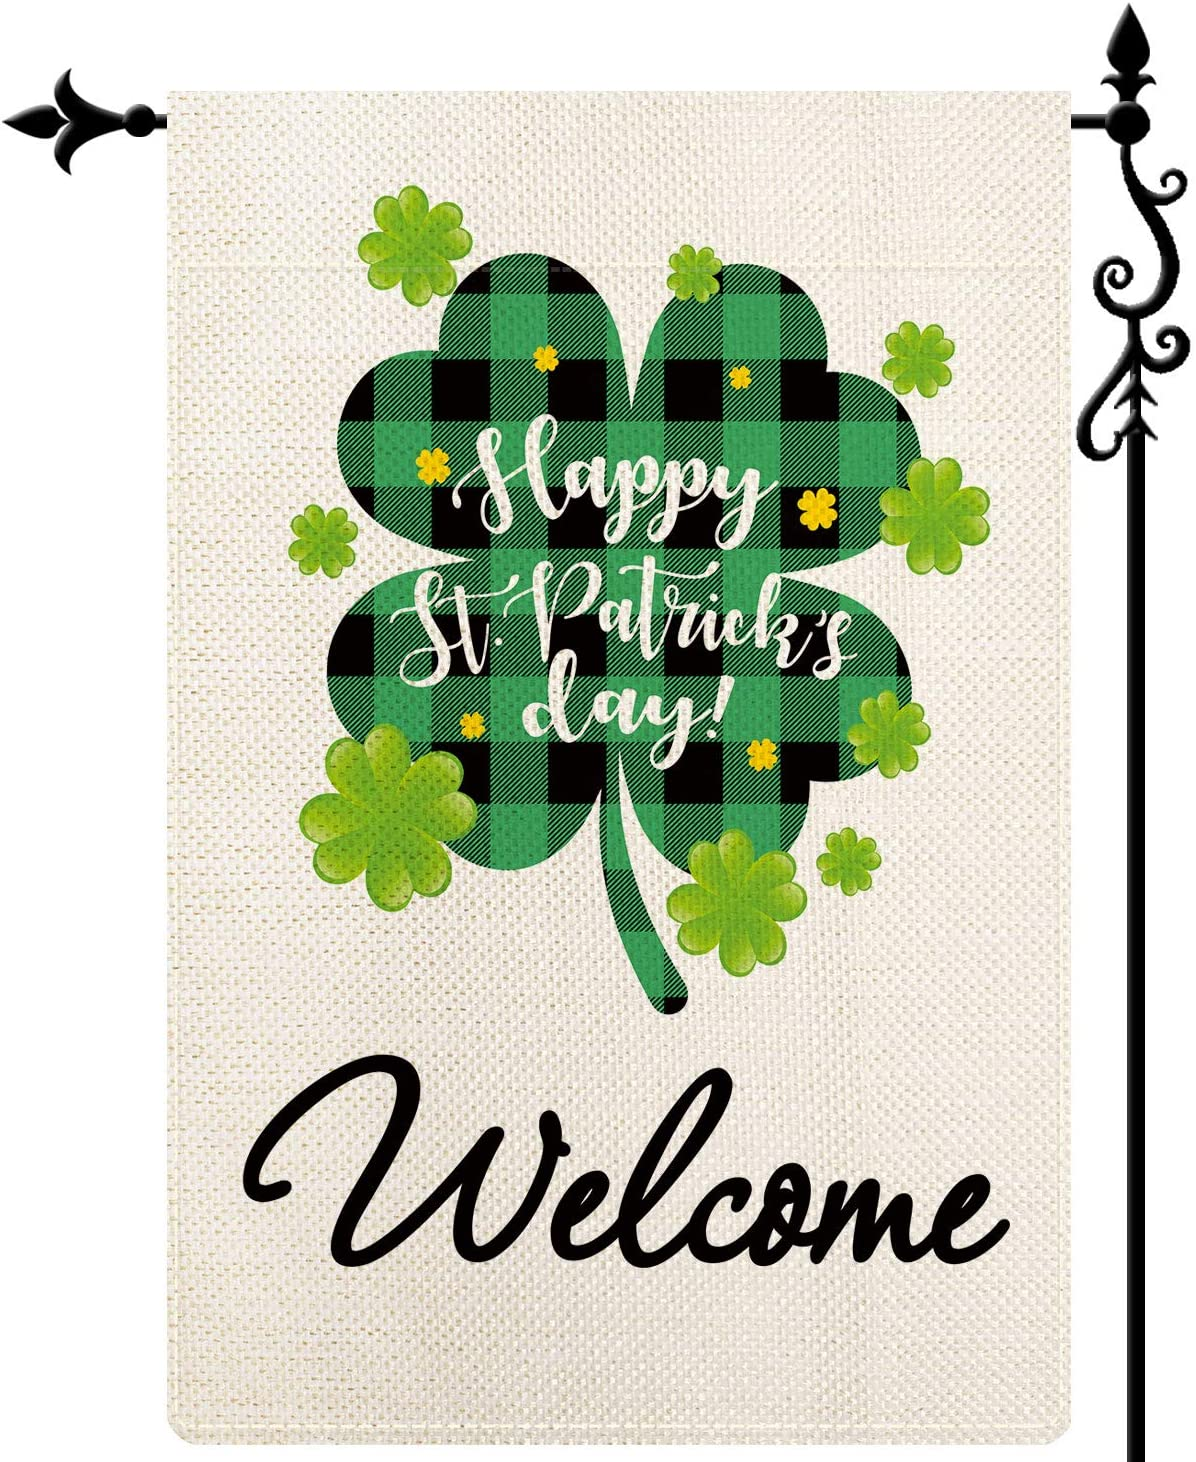 DecorMaster St Patrick's Day Small Garden Flag St Patrick's Day Gnome Garden Flag Vertical Double Sided St Patrick's Day Gnomes House Yard Outdoor Decoration 12.5x18 inch